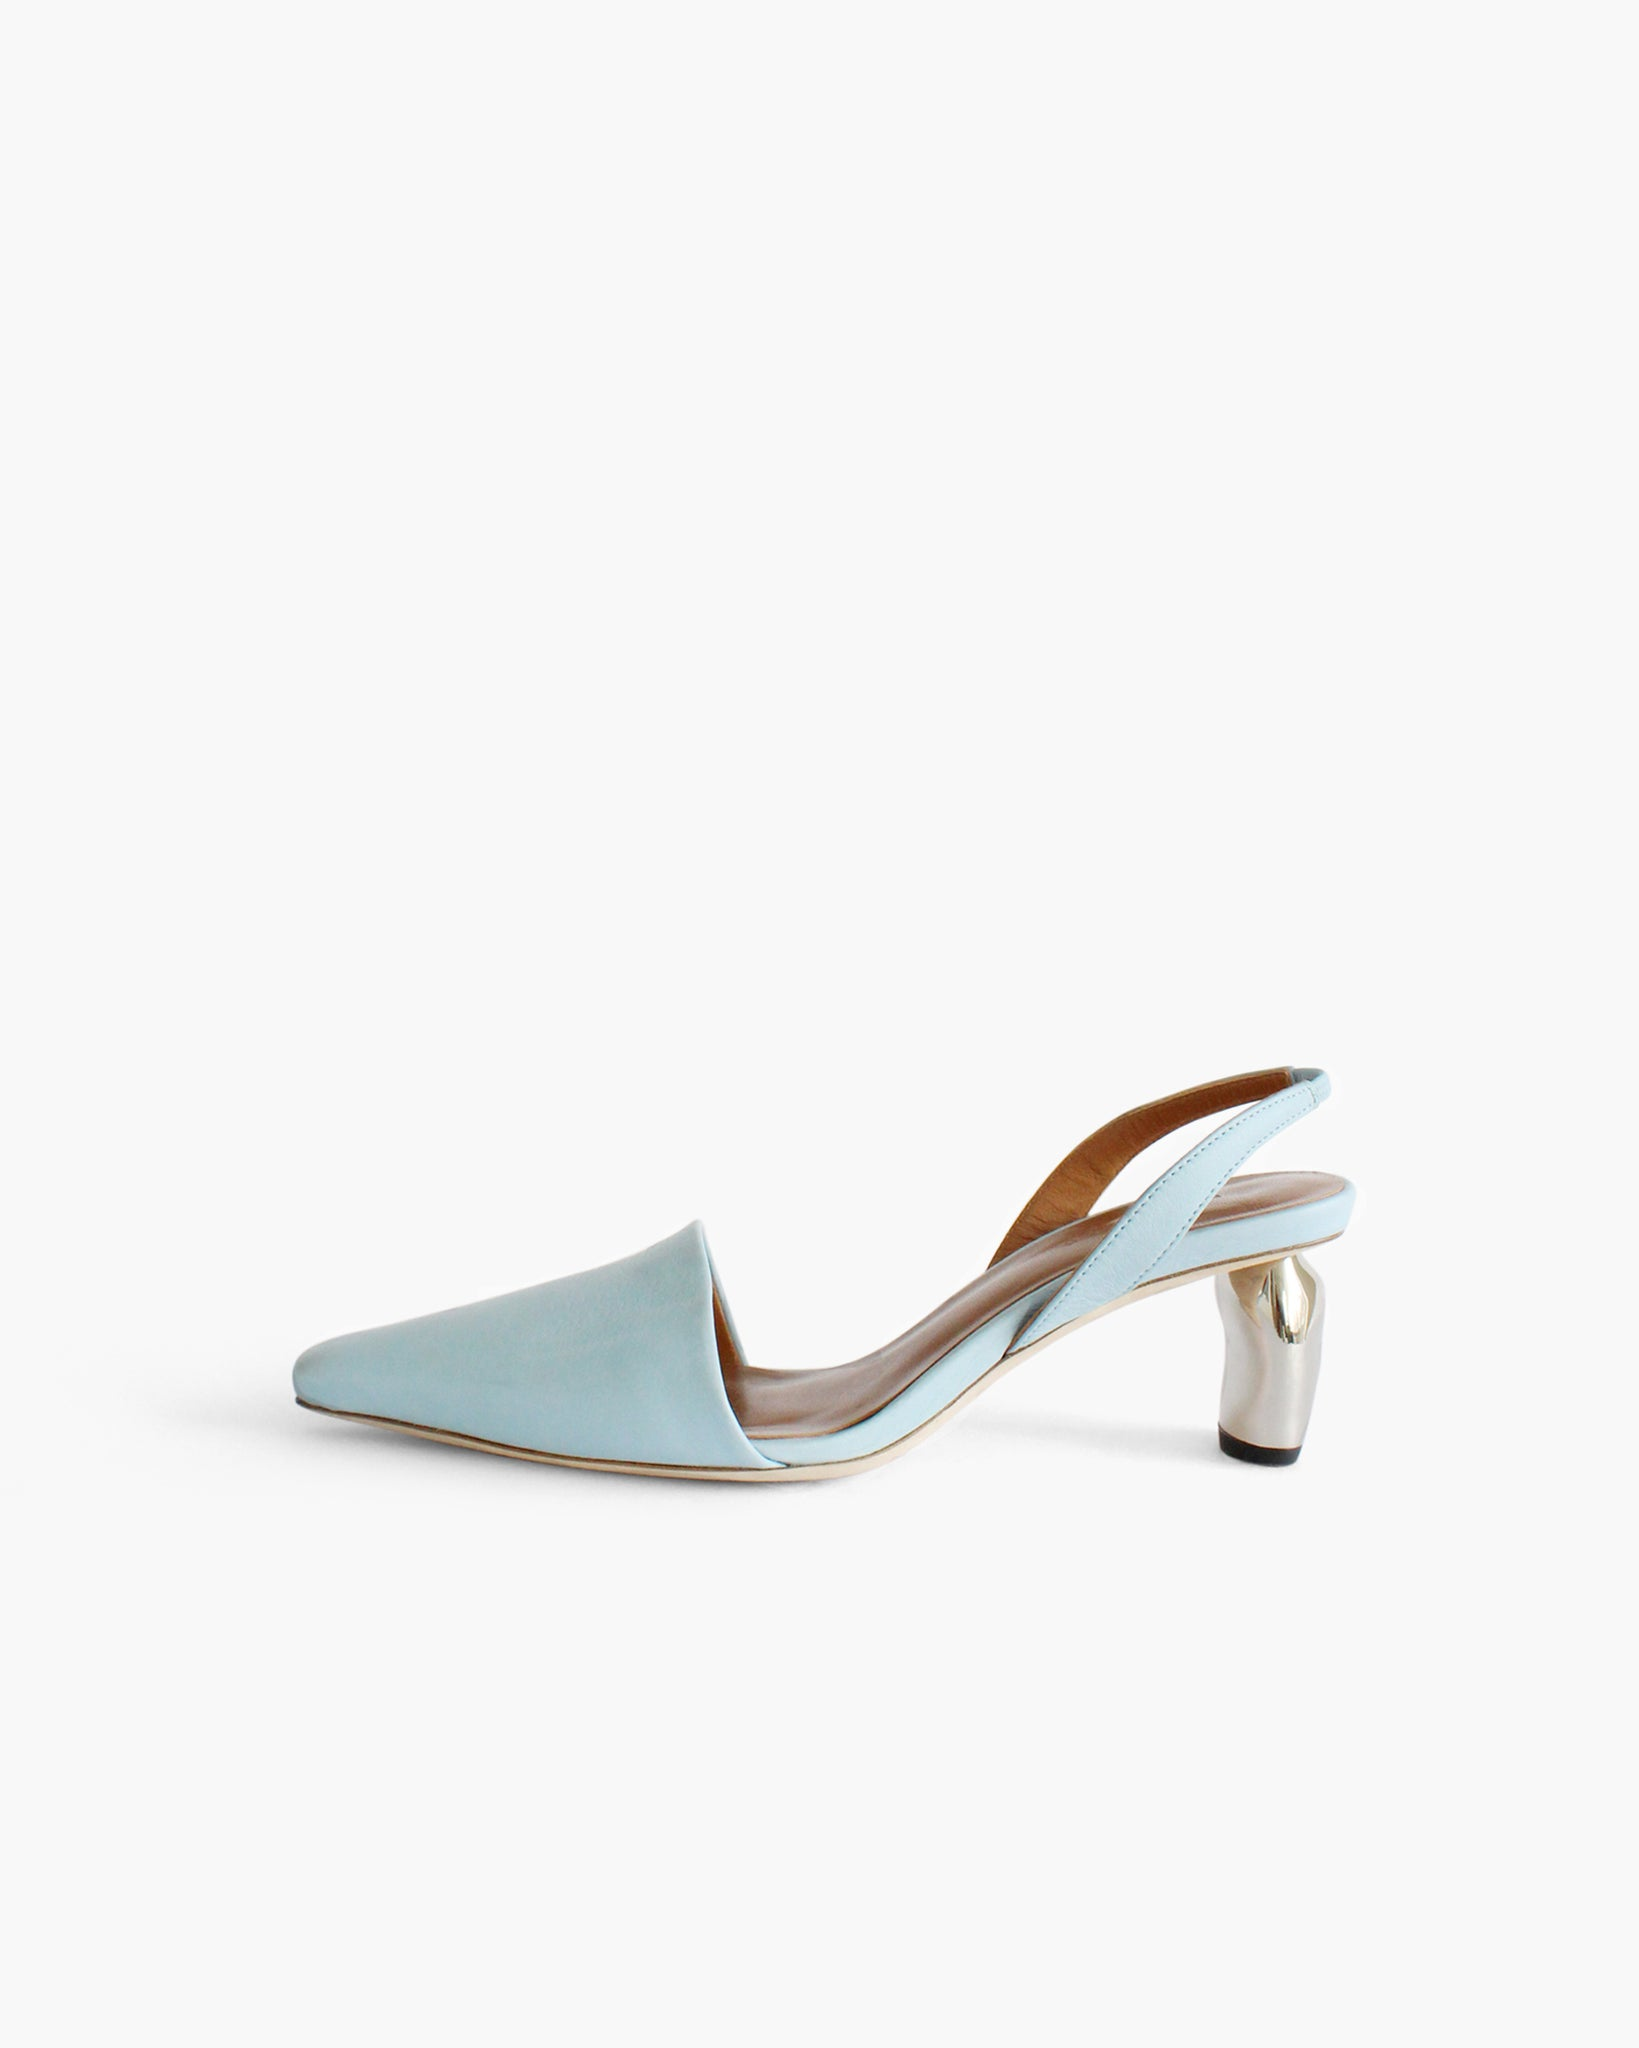 Conie Slingbacks Heels Leather Blue - SPECIAL PRICE